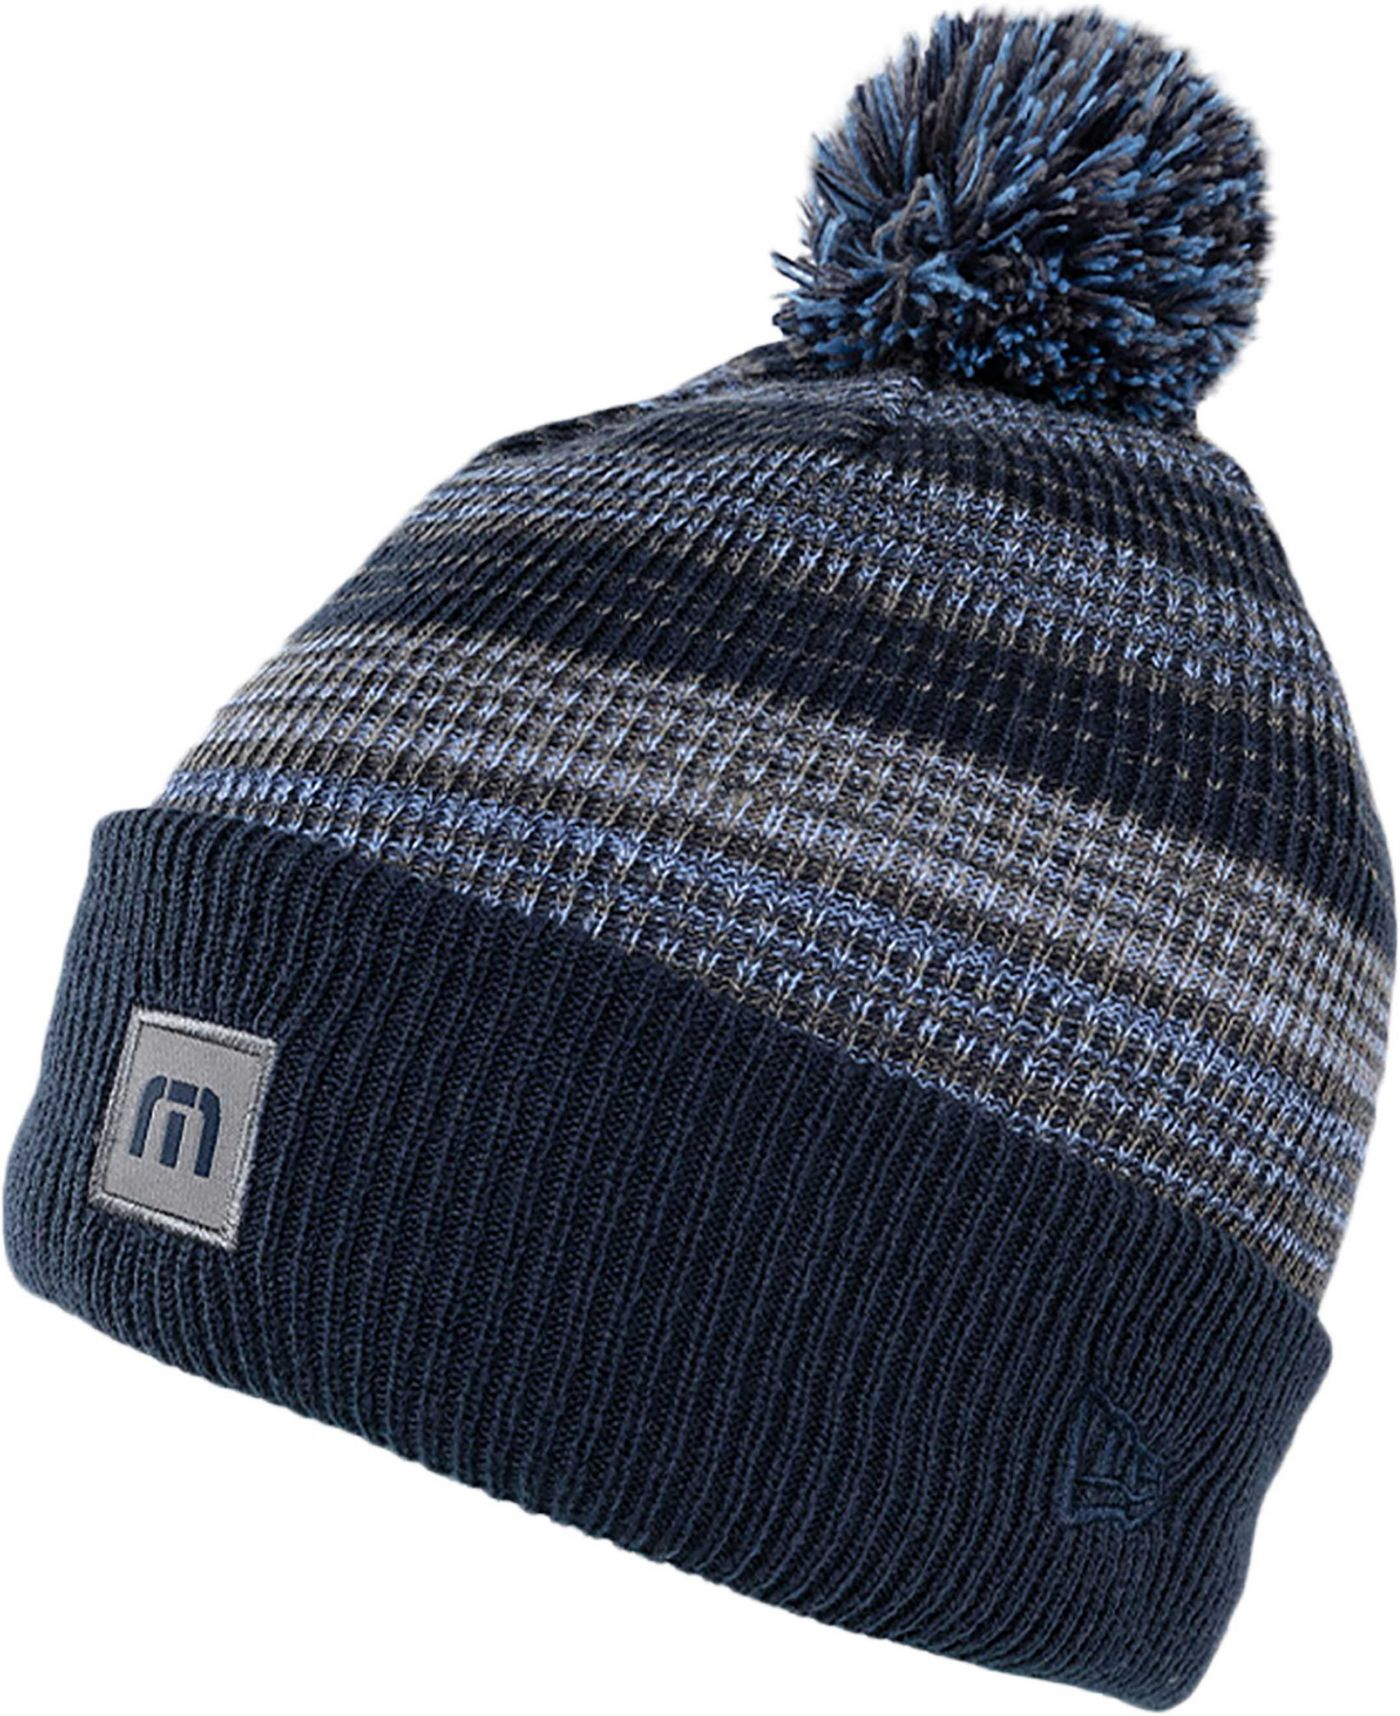 TravisMathew Men's Krampe Golf Beanie